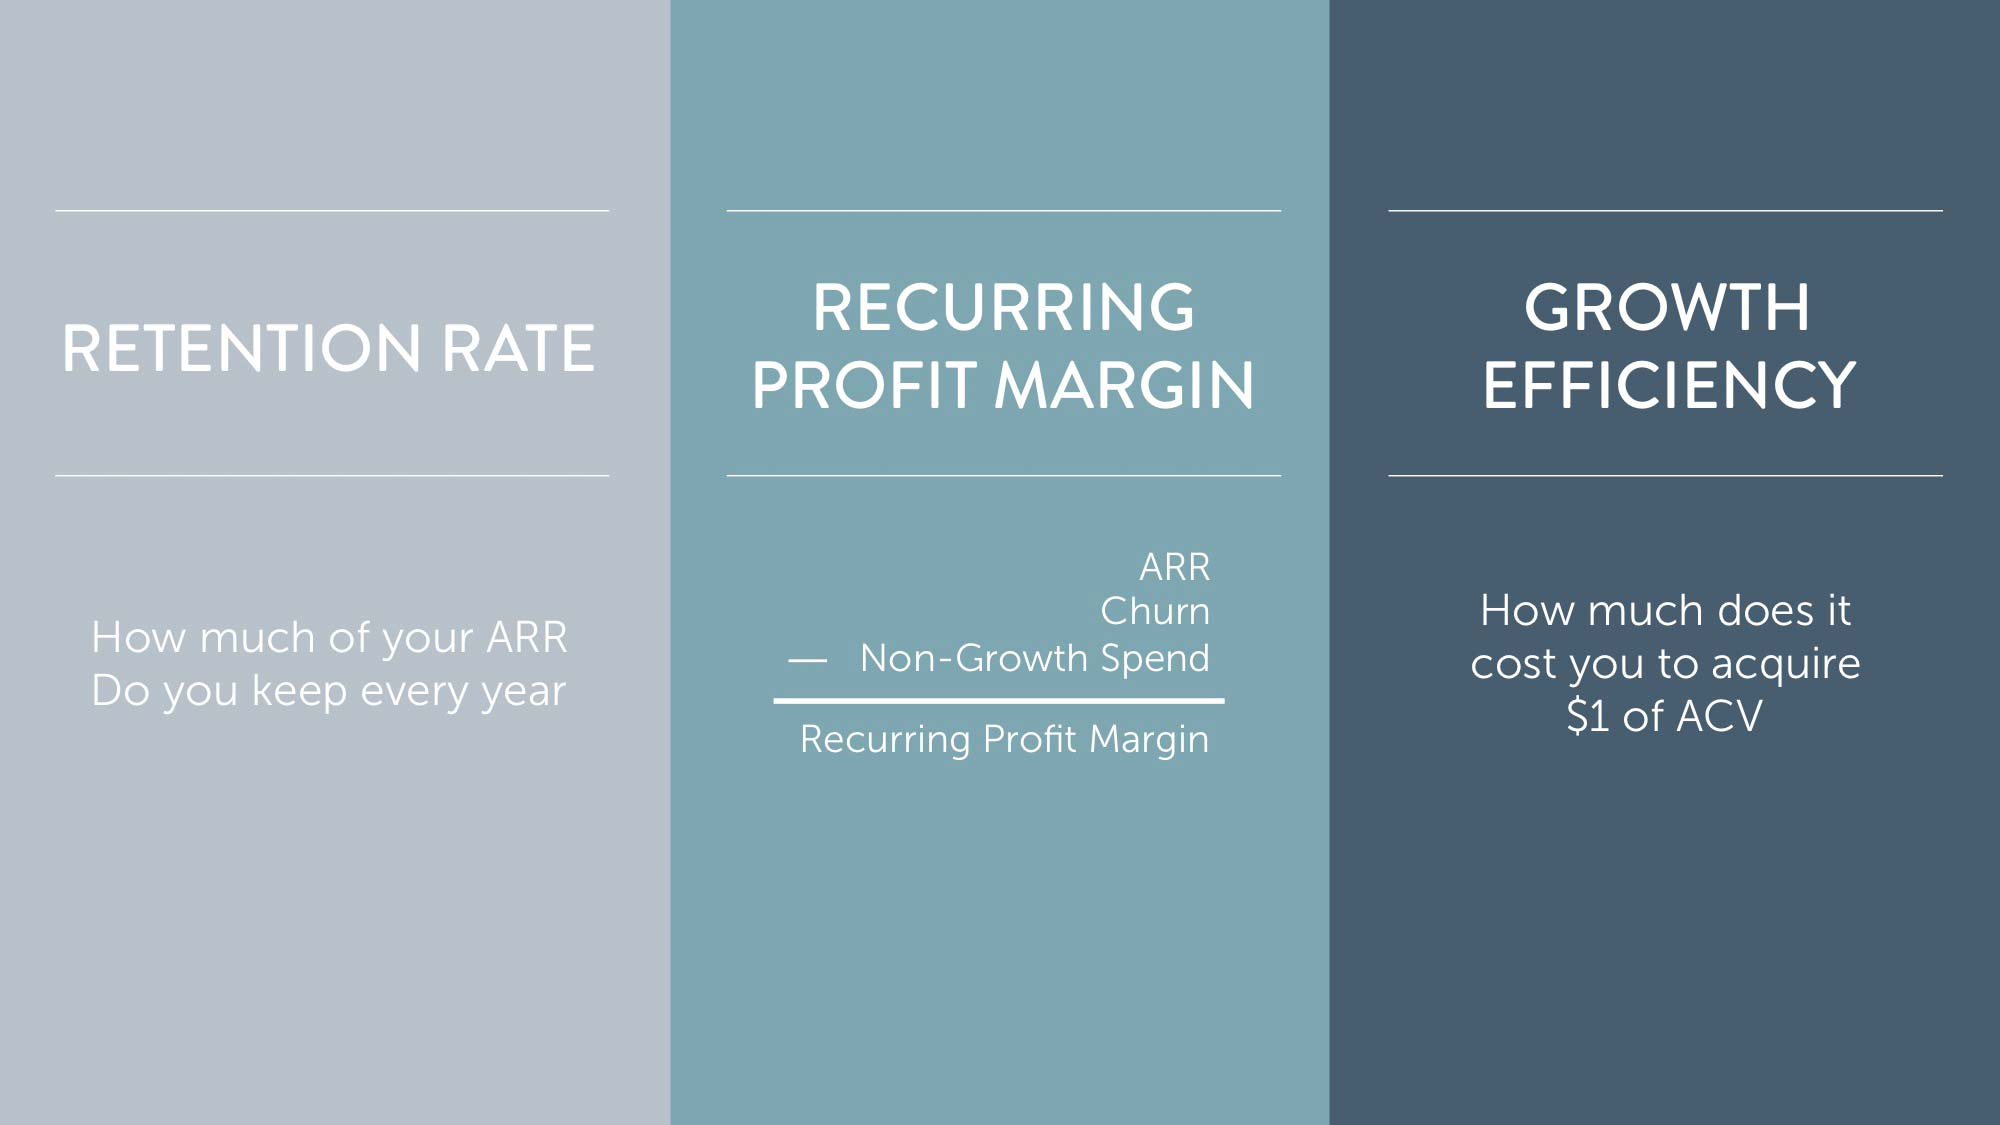 Measure customer success: calculate ARR, recurring profit margin, growth efficiency